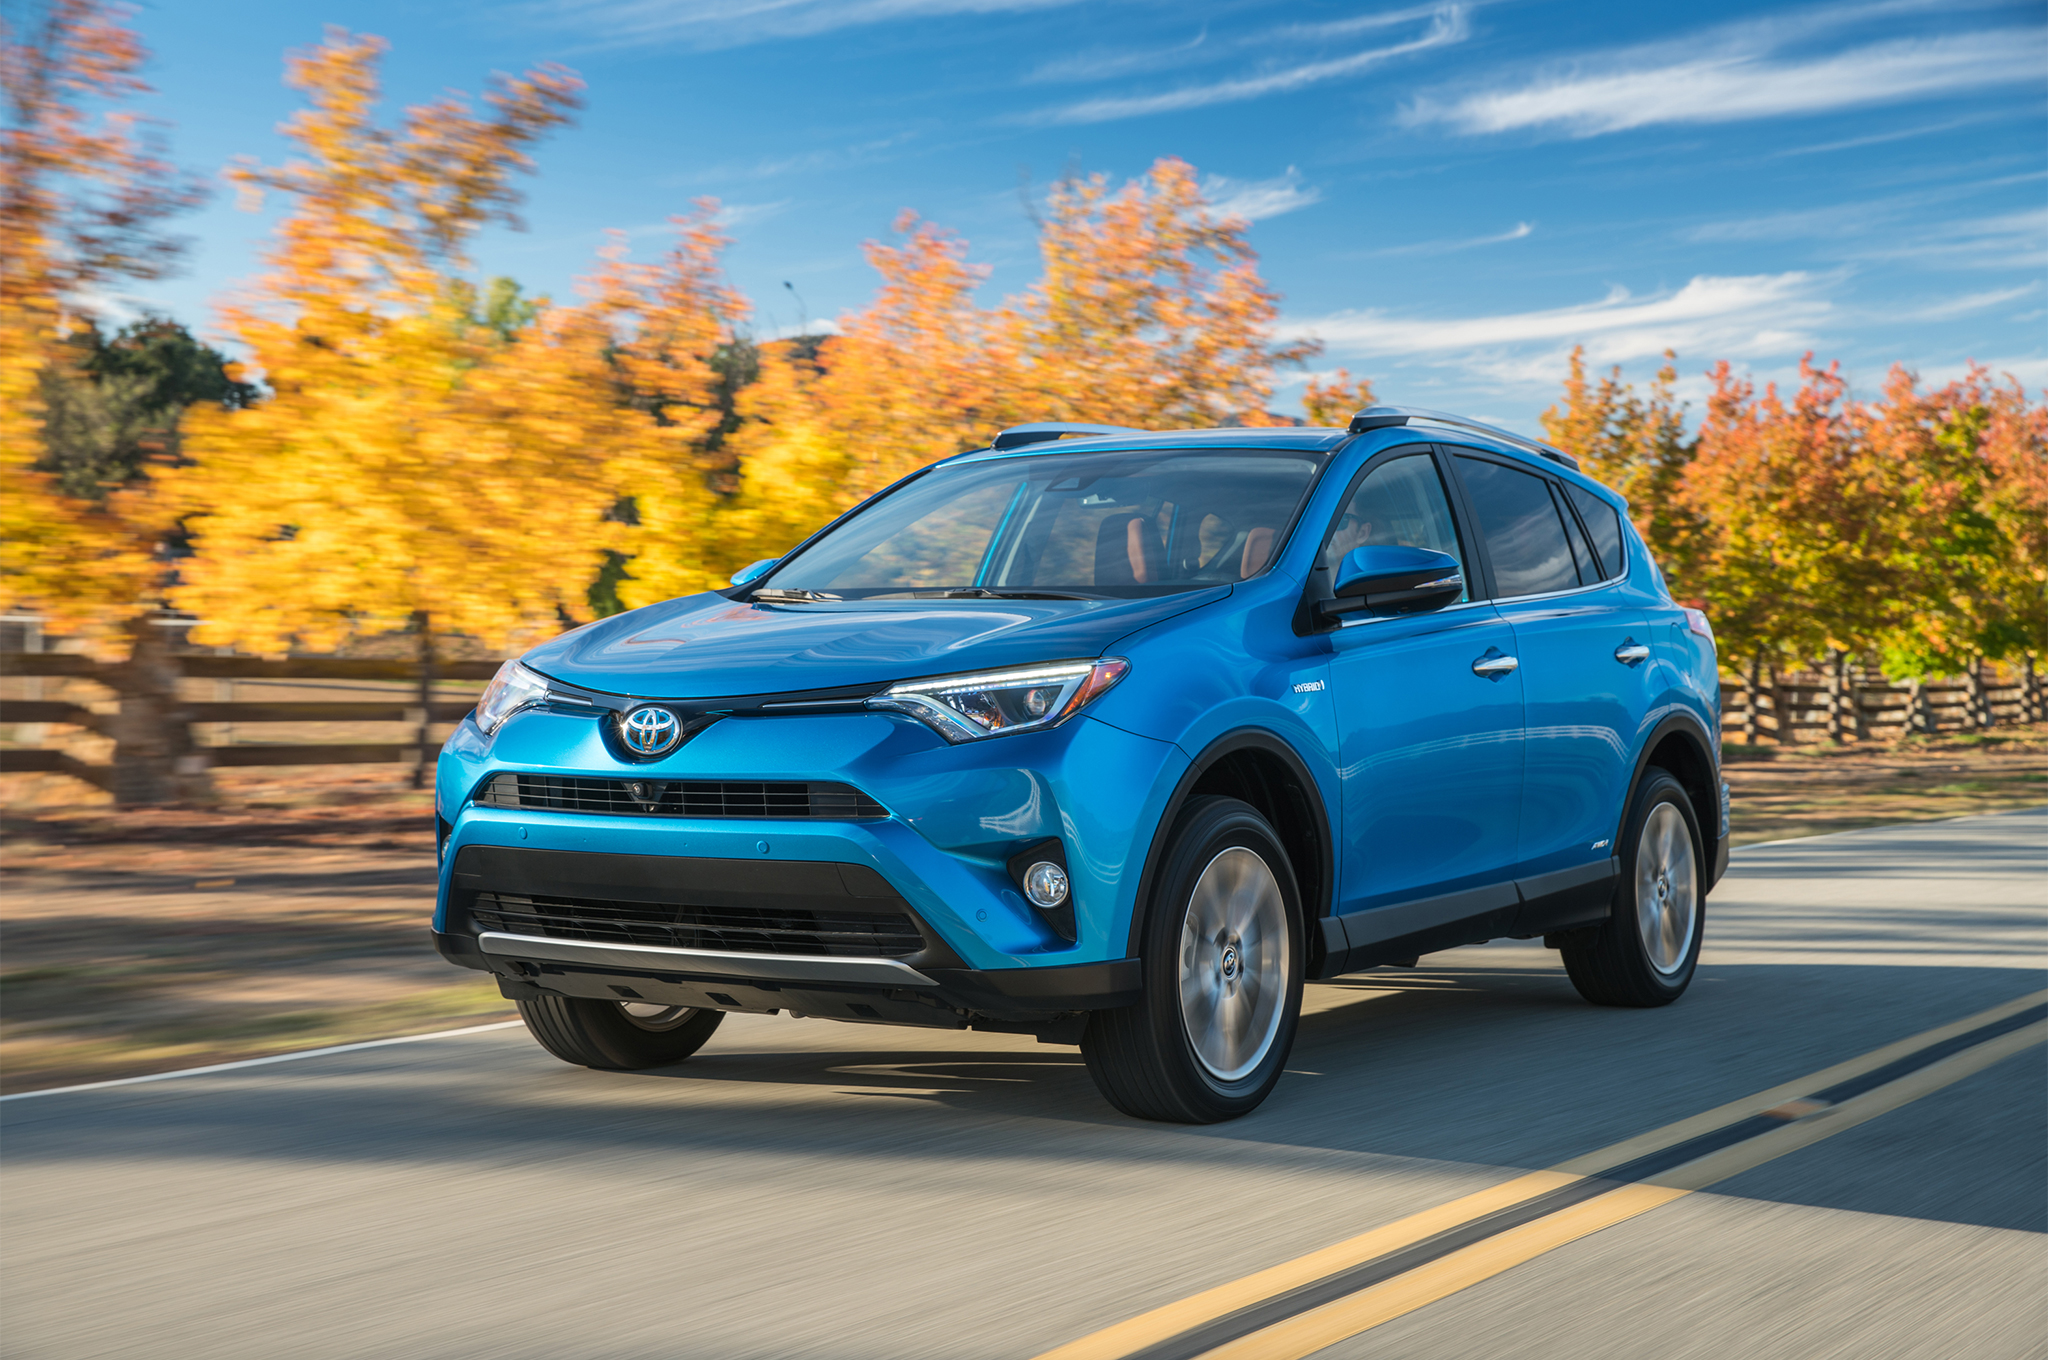 2019 toyota rav4 price release date specs design. Black Bedroom Furniture Sets. Home Design Ideas